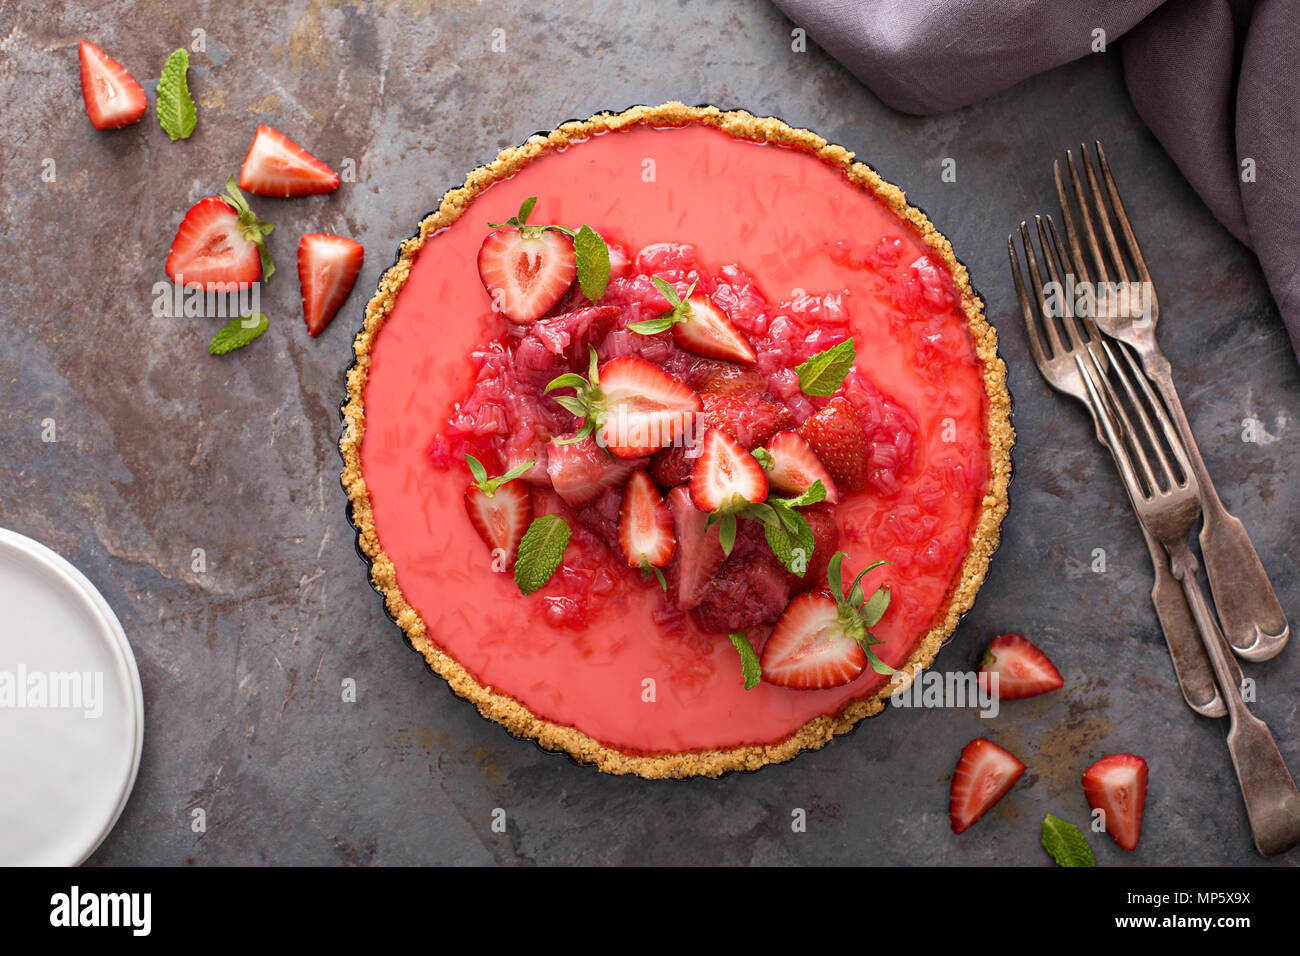 Yogurt tart with rhubarb strawberry compote - Stock Image